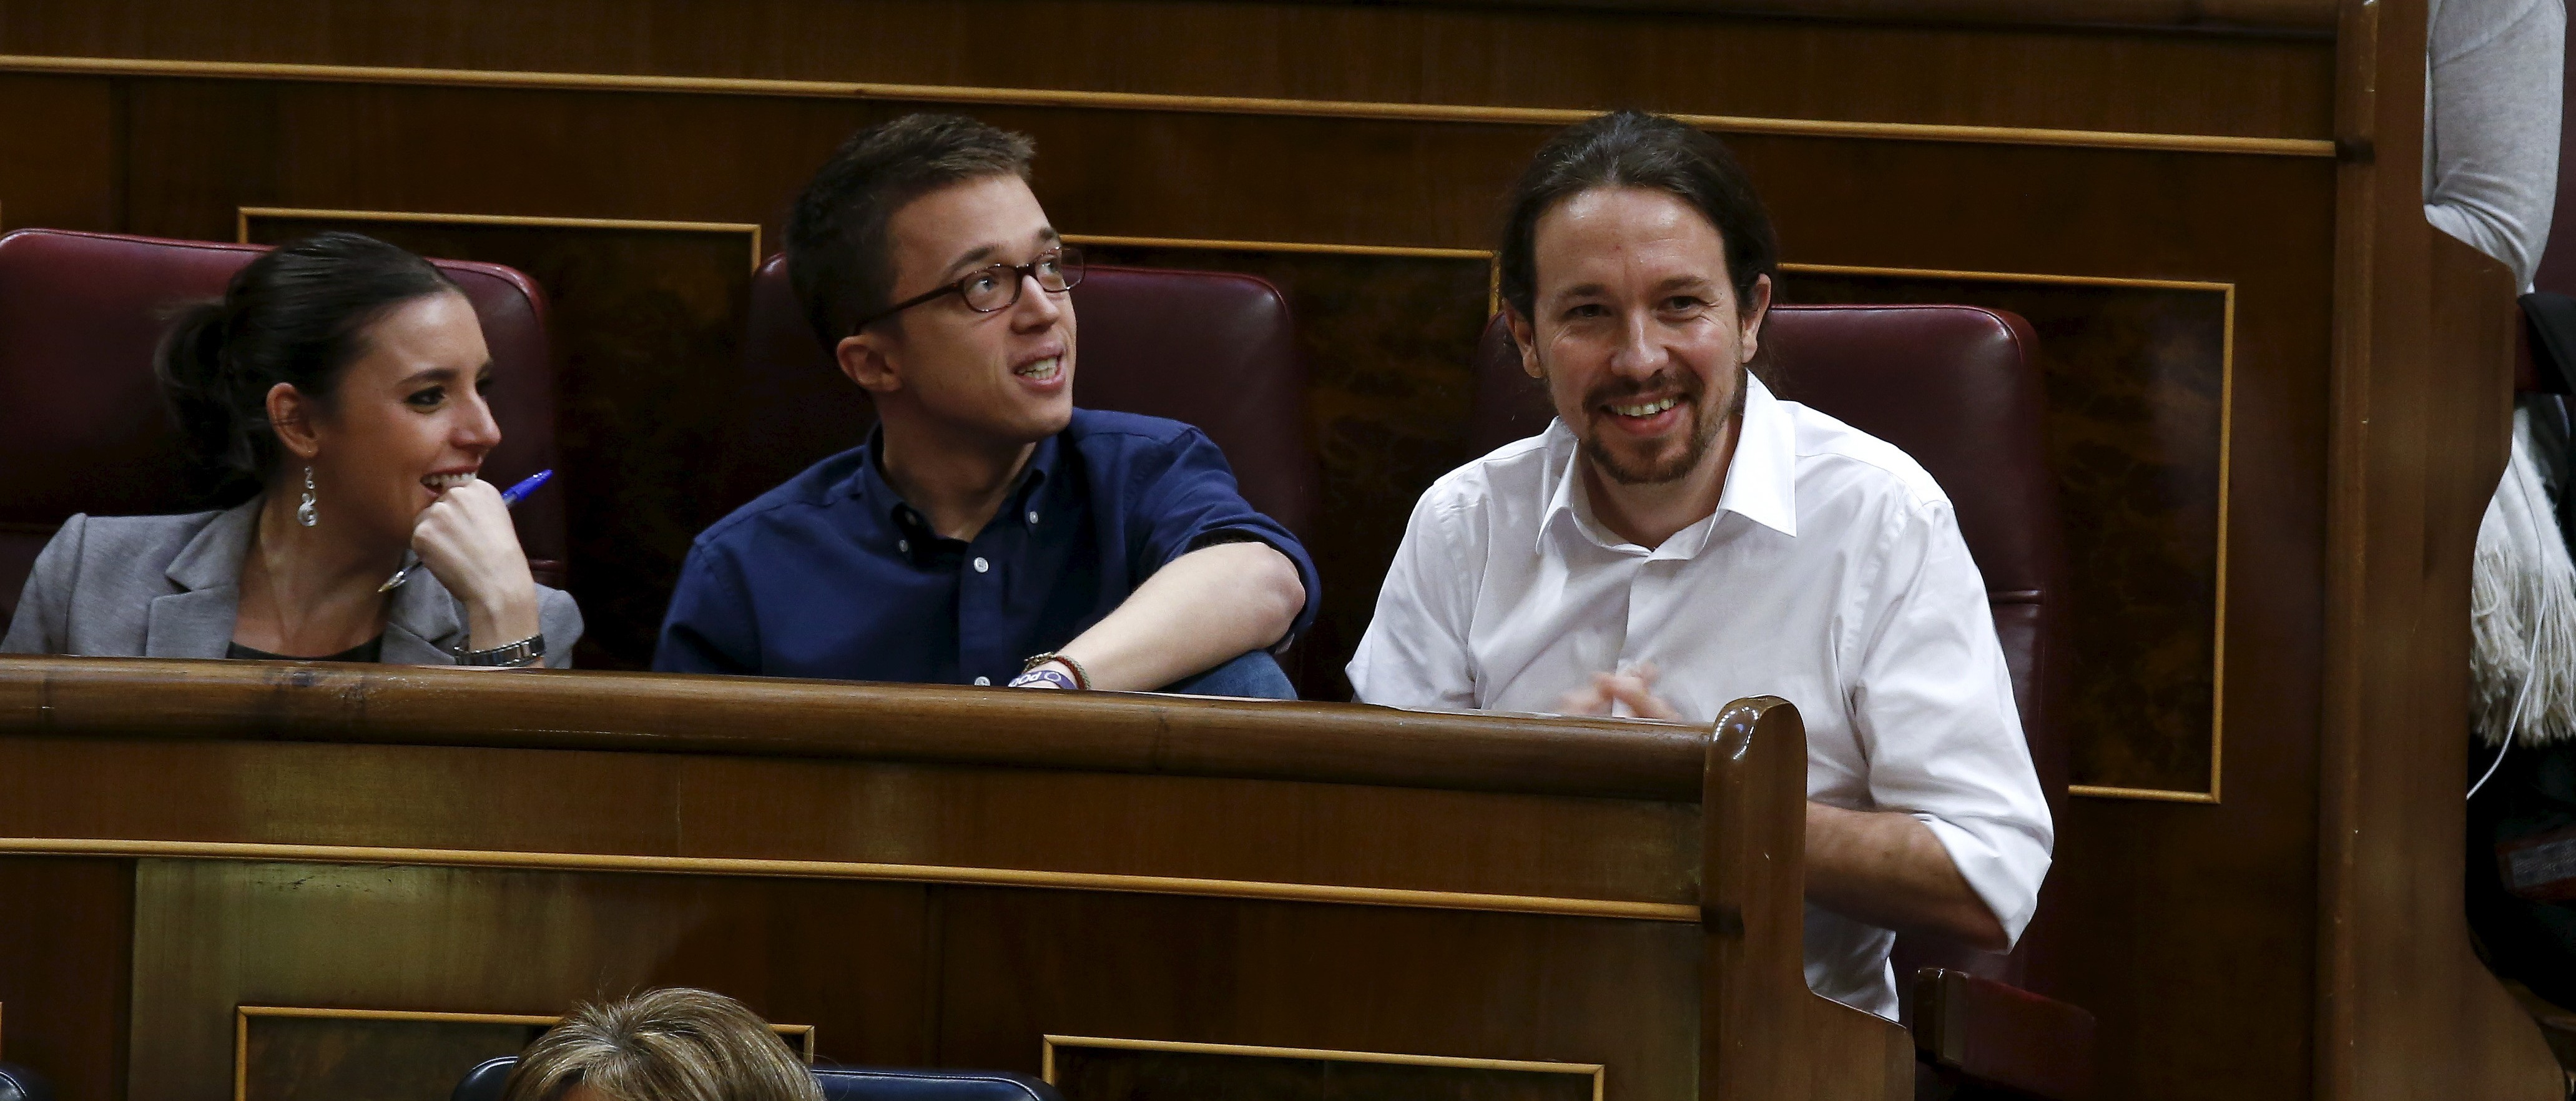 Podemos (We Can) party leader Pablo Iglesias (R) and party deputies attend an investiture debate at parliament in Madrid, Spain,  March 2, 2016.  REUTERS/Andrea Comas  - RTS8WEZ